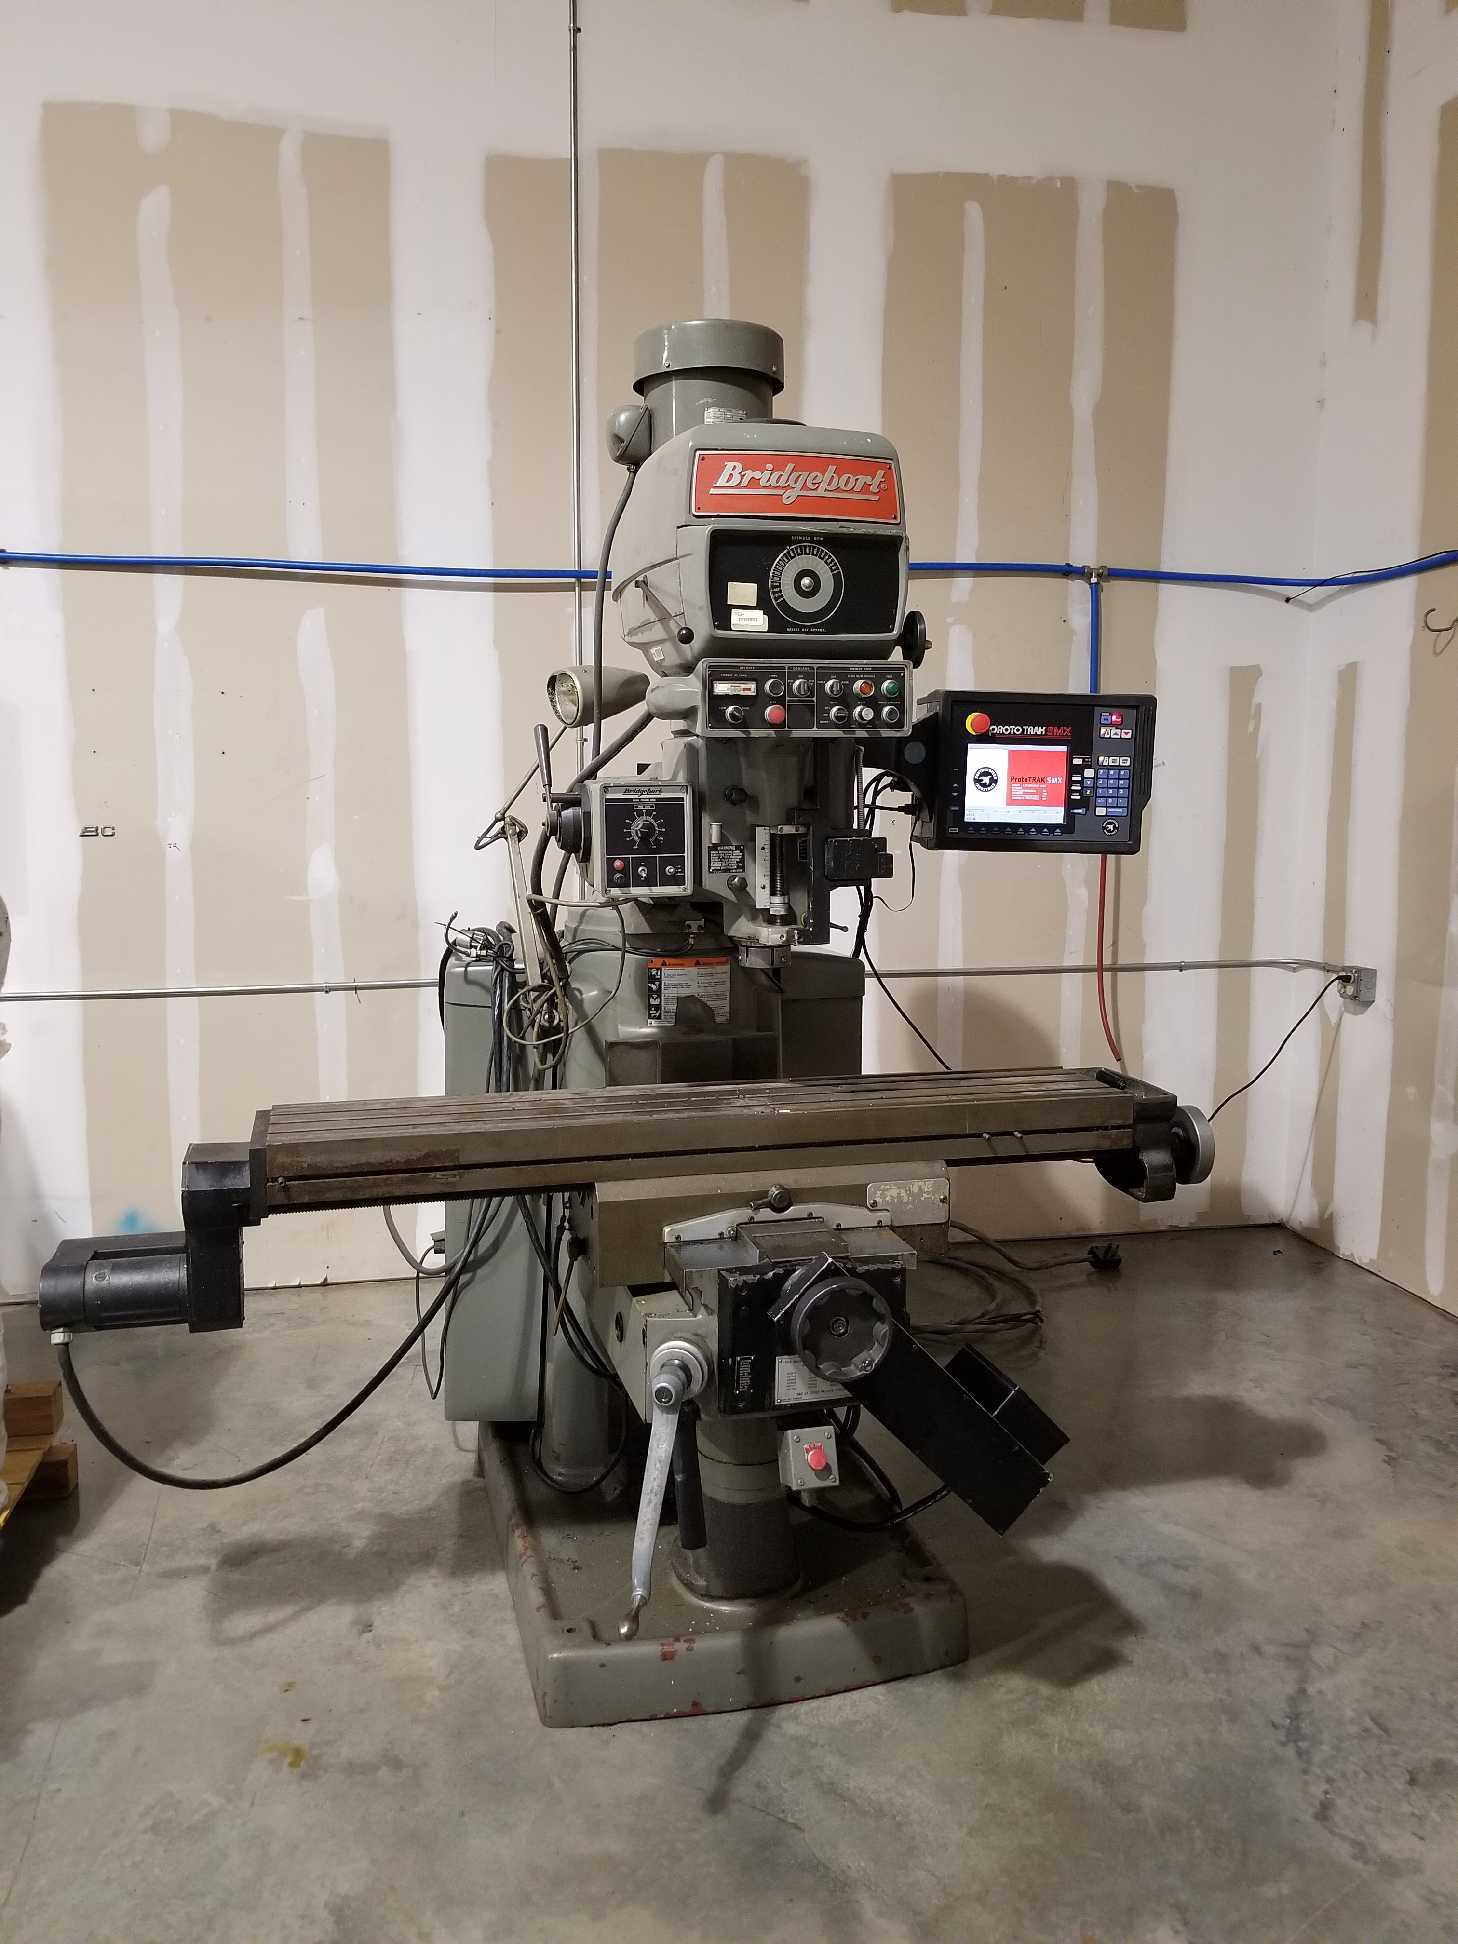 1988 Bridgeport Series II w/SMX ProtoTRAK Control - This machine came out of a technical college, not a production facility. Has been used lightly teaching the next generation of machinist.Request a quote 1988 Bridgeport Series II